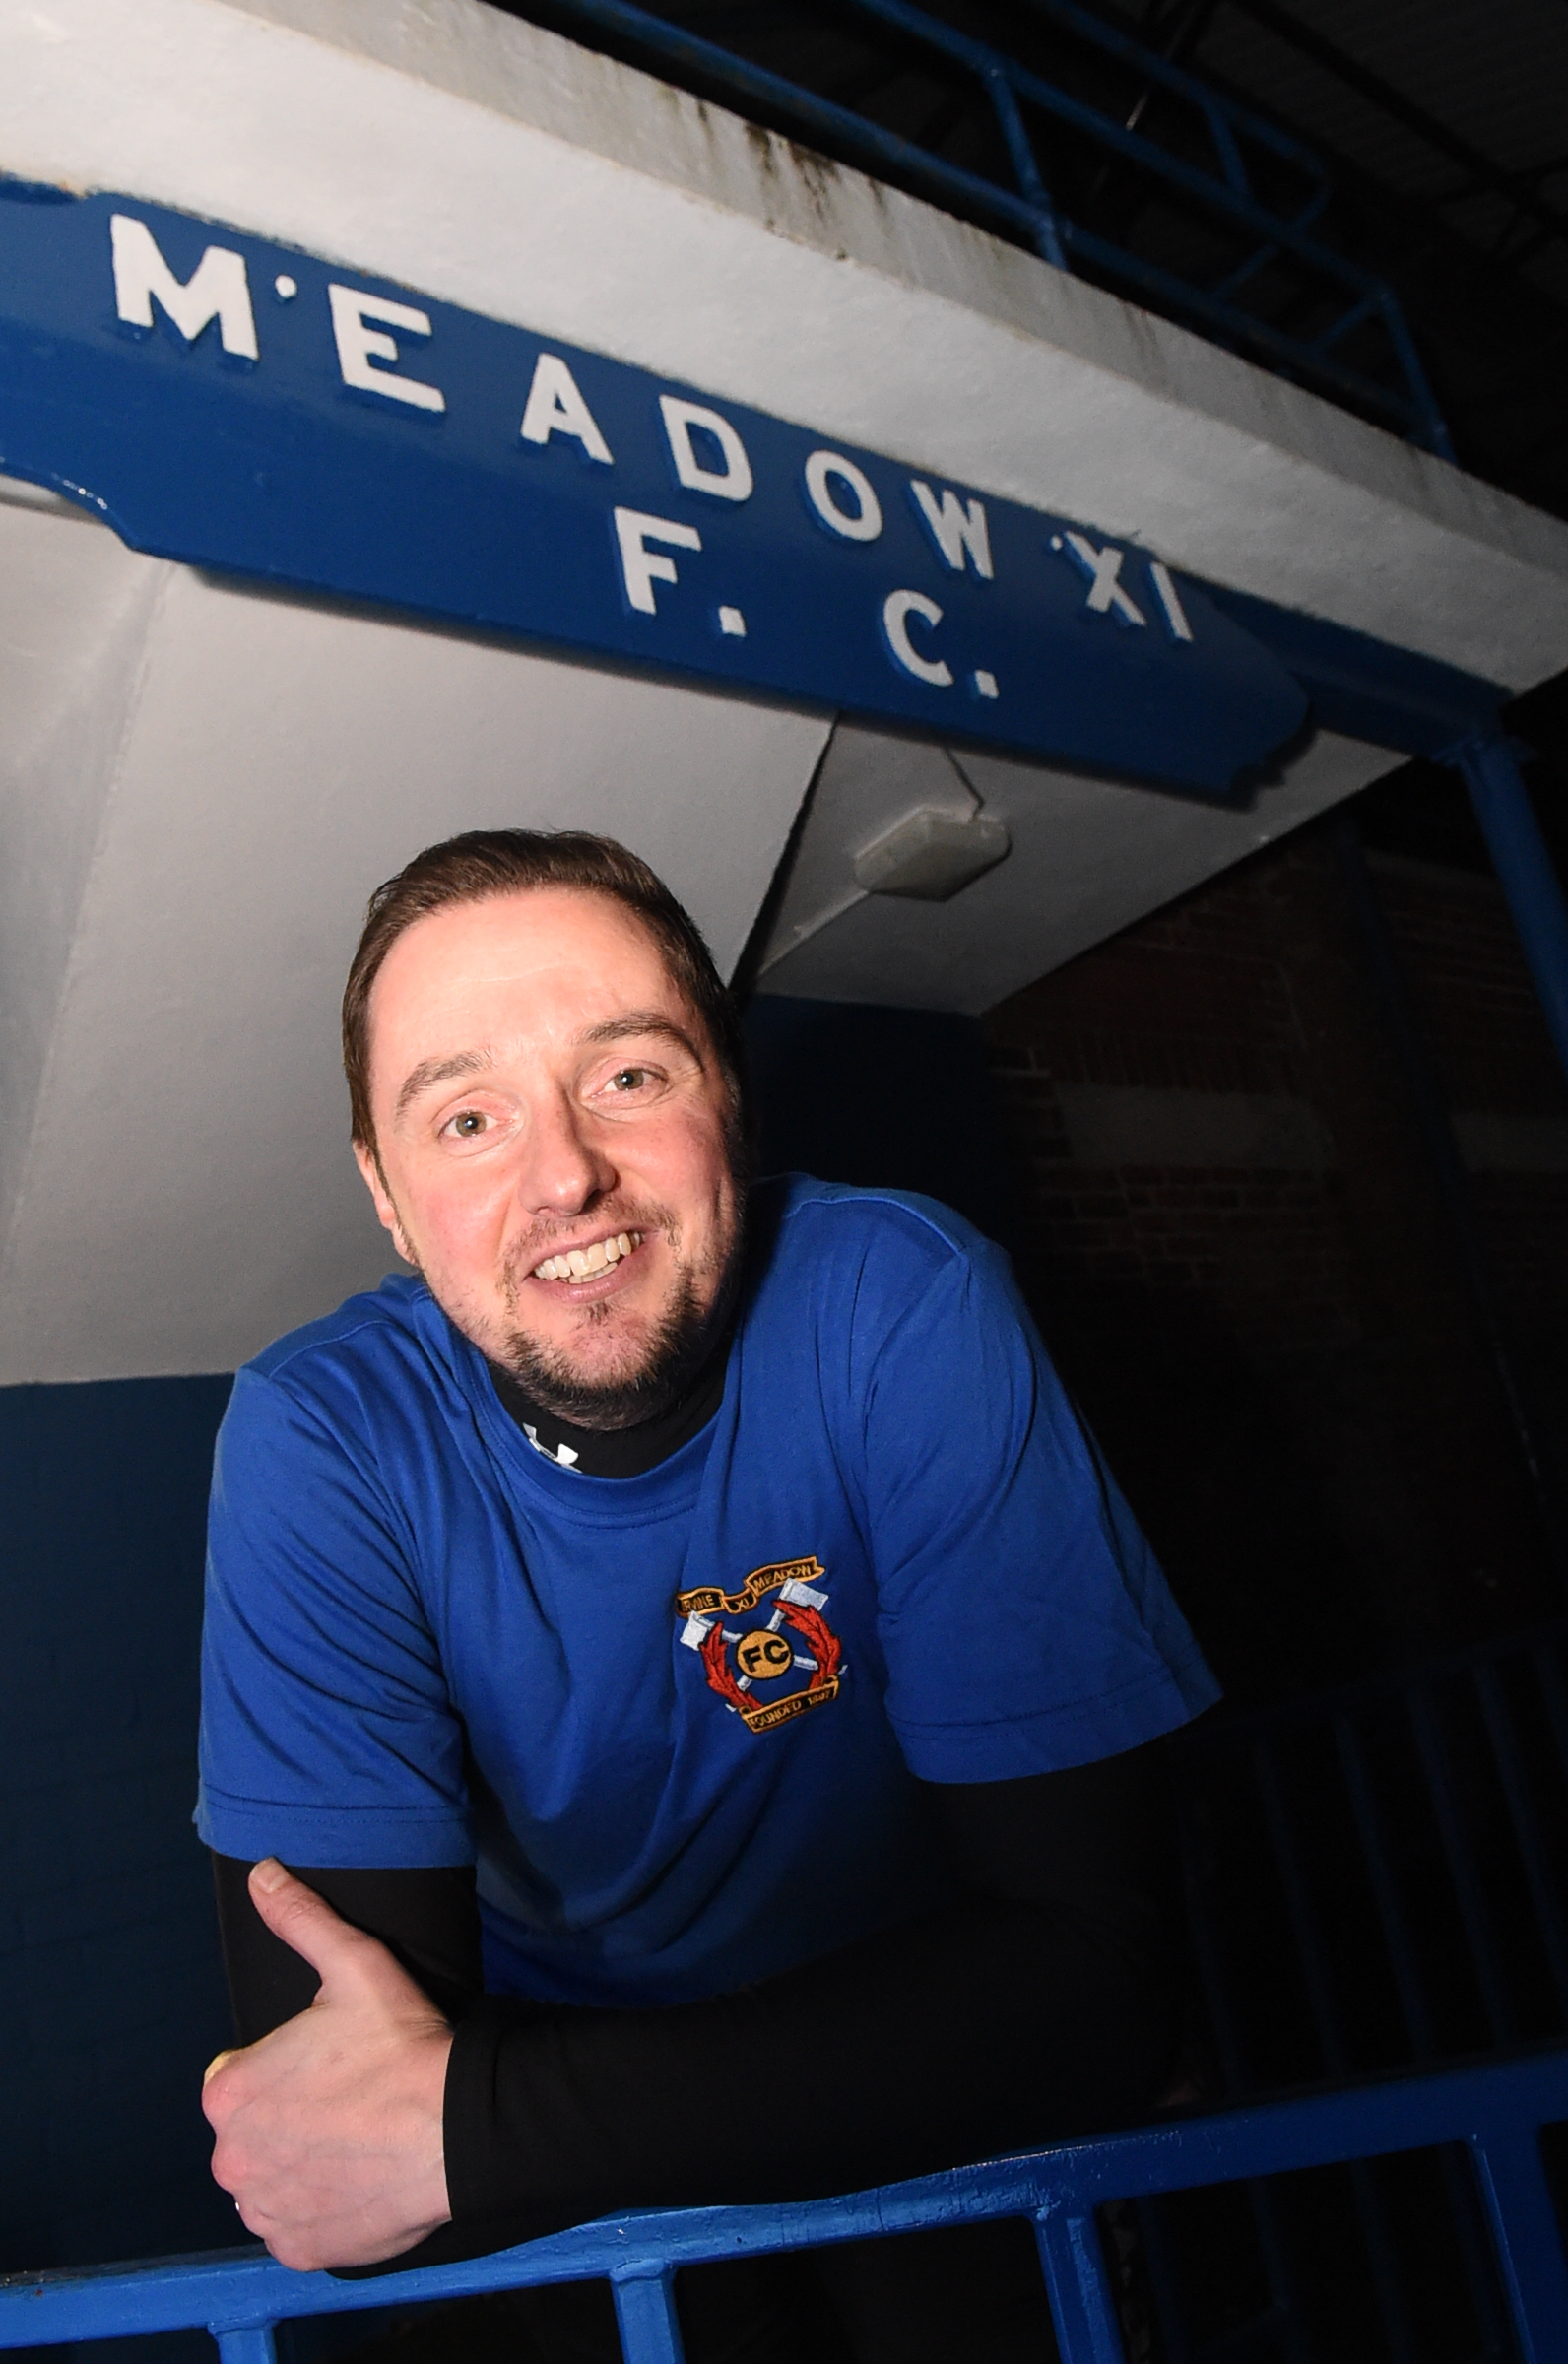 MEADOW manager: Brian McGinty.